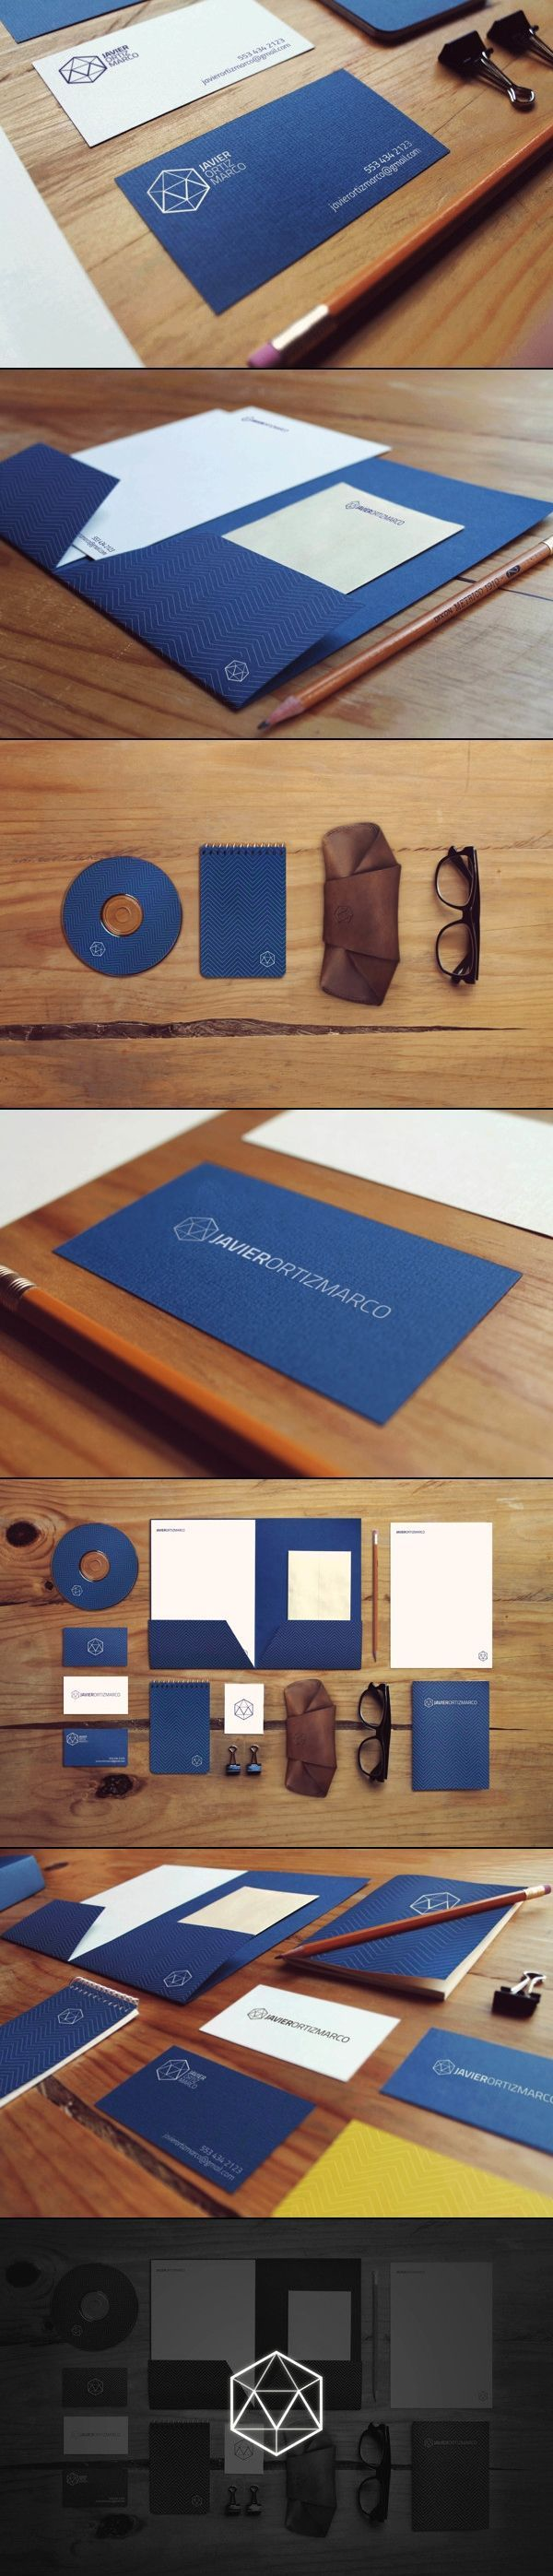 Graphic corporate design stationary business card. If you're a user experience professional, listen to The UX Blog Podcast on iTunes.